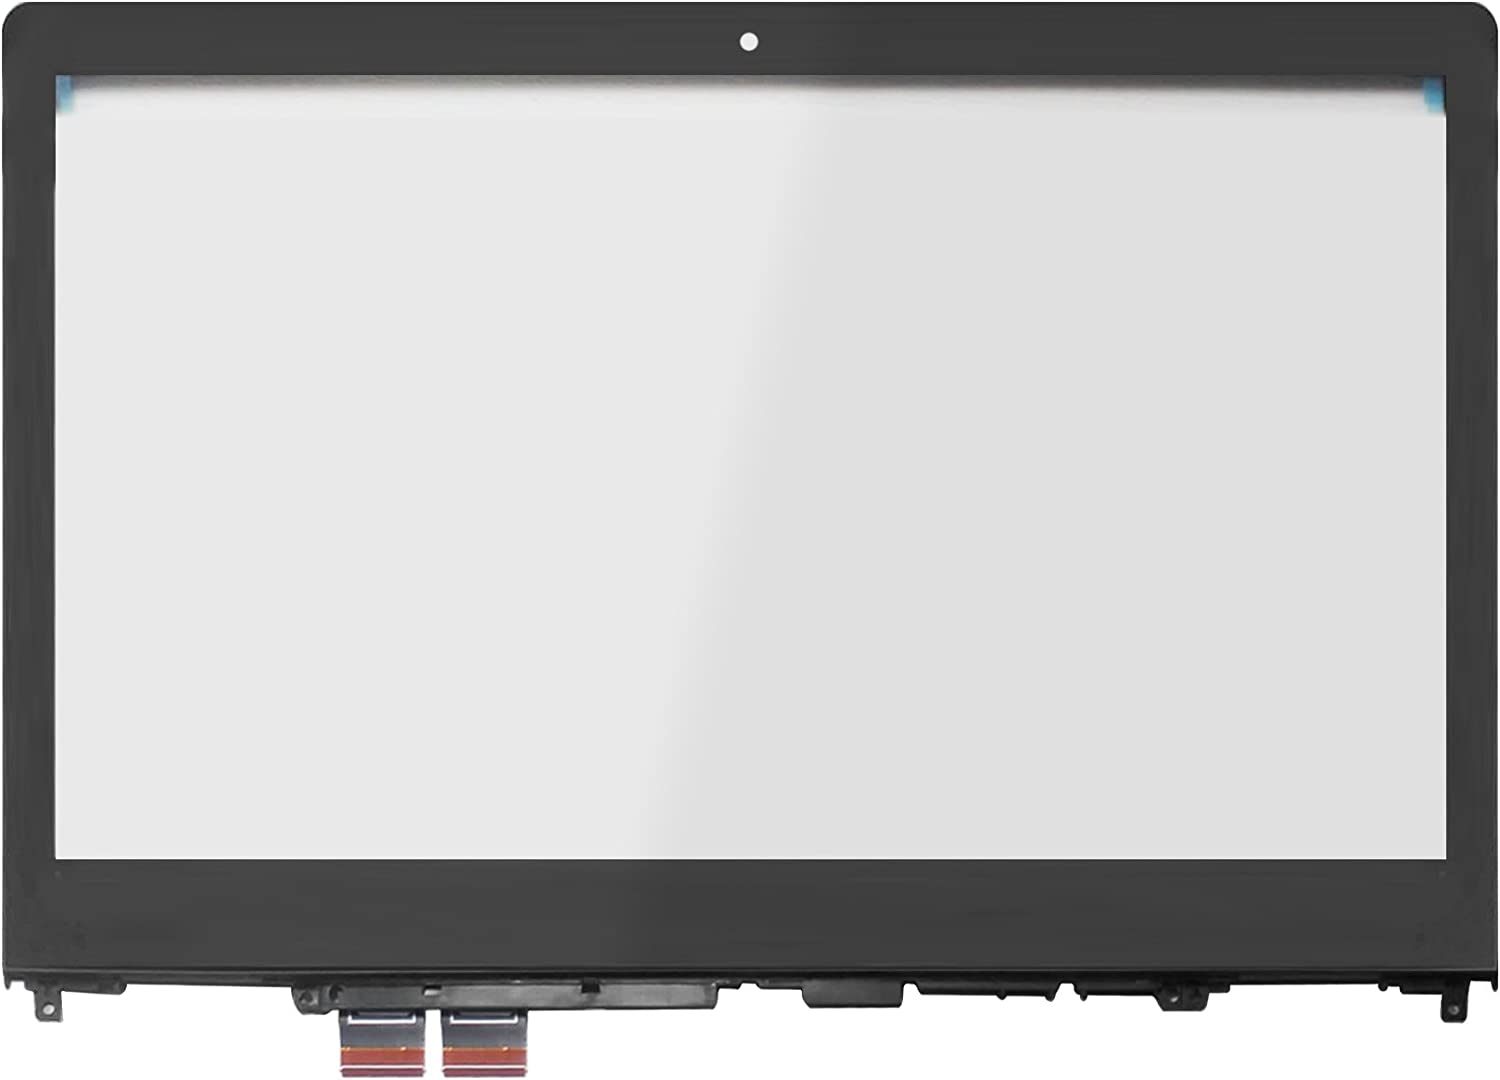 LCDOLED Replacement 14.0 inches Touch Screen Digitizer Front Glass Panel with Bezel for Lenovo Flex 4-14 4-1470 4-1480 80SA 80VD 80S7 (Touch Digitizer + Bezel)